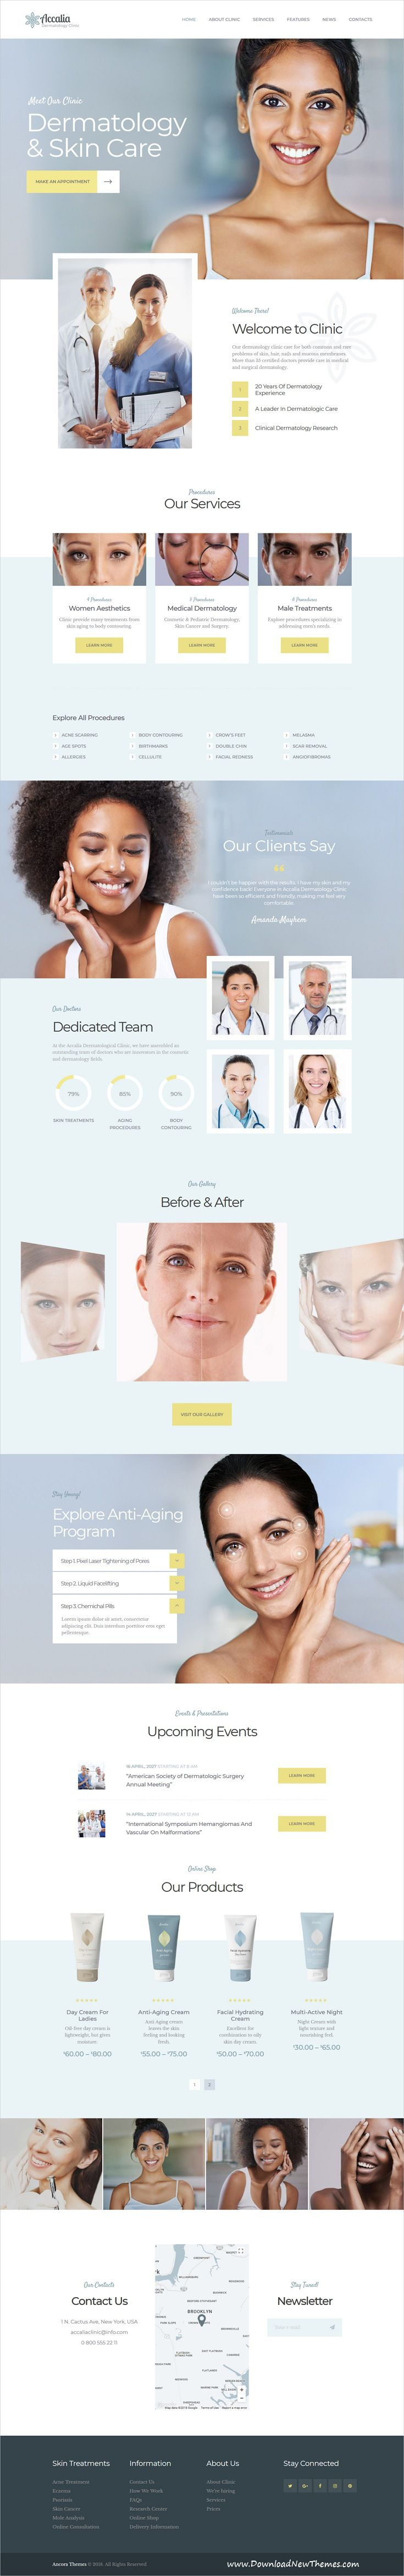 Accalia is clean and modern design 4in1 responsive #WordPress theme for #dermatology clinic, cosmetology, hairstyle, plastic or #cosmeticsurgery services website to live preview & download click on Visit